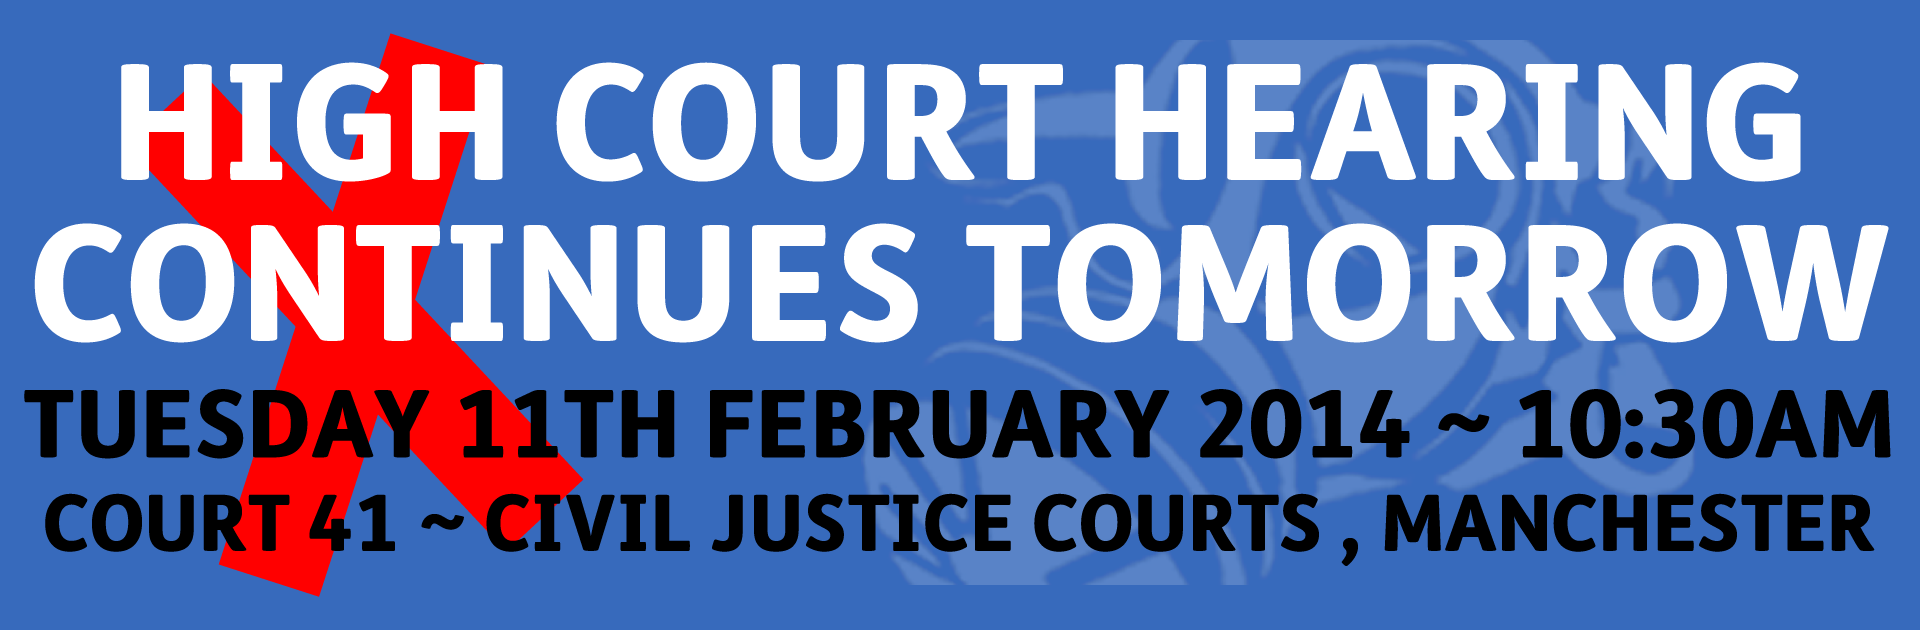 High Court Hearing Continues Tomorrow - Tuesday 11th February 2014 - 10:30am - Court 41, Civil Justice Courts, Manchester